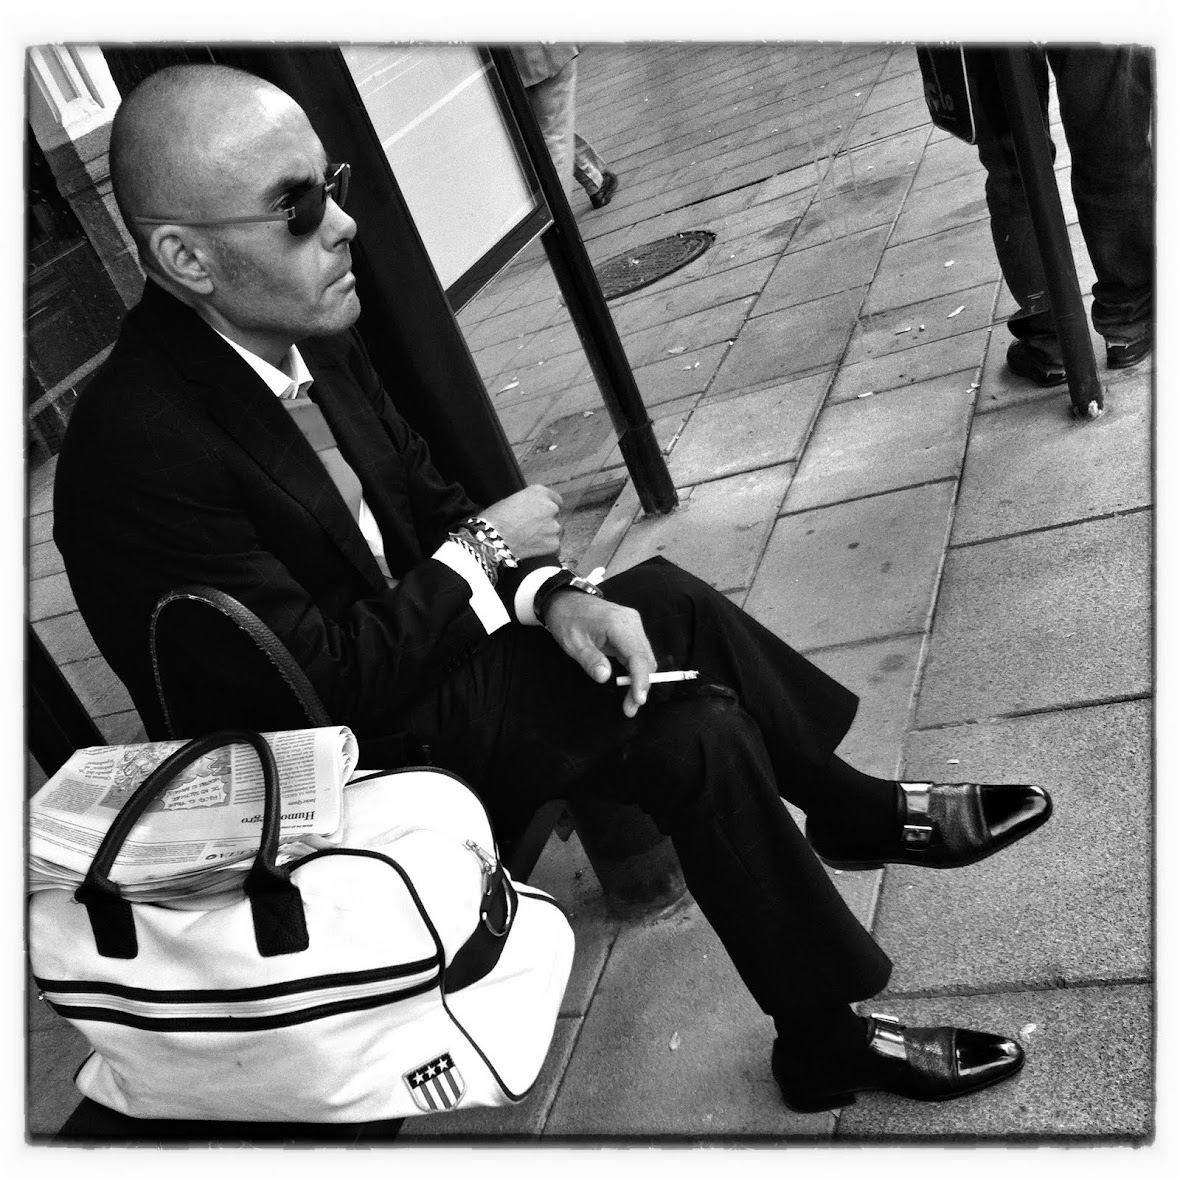 iPhoneography : The White Bag Hitman